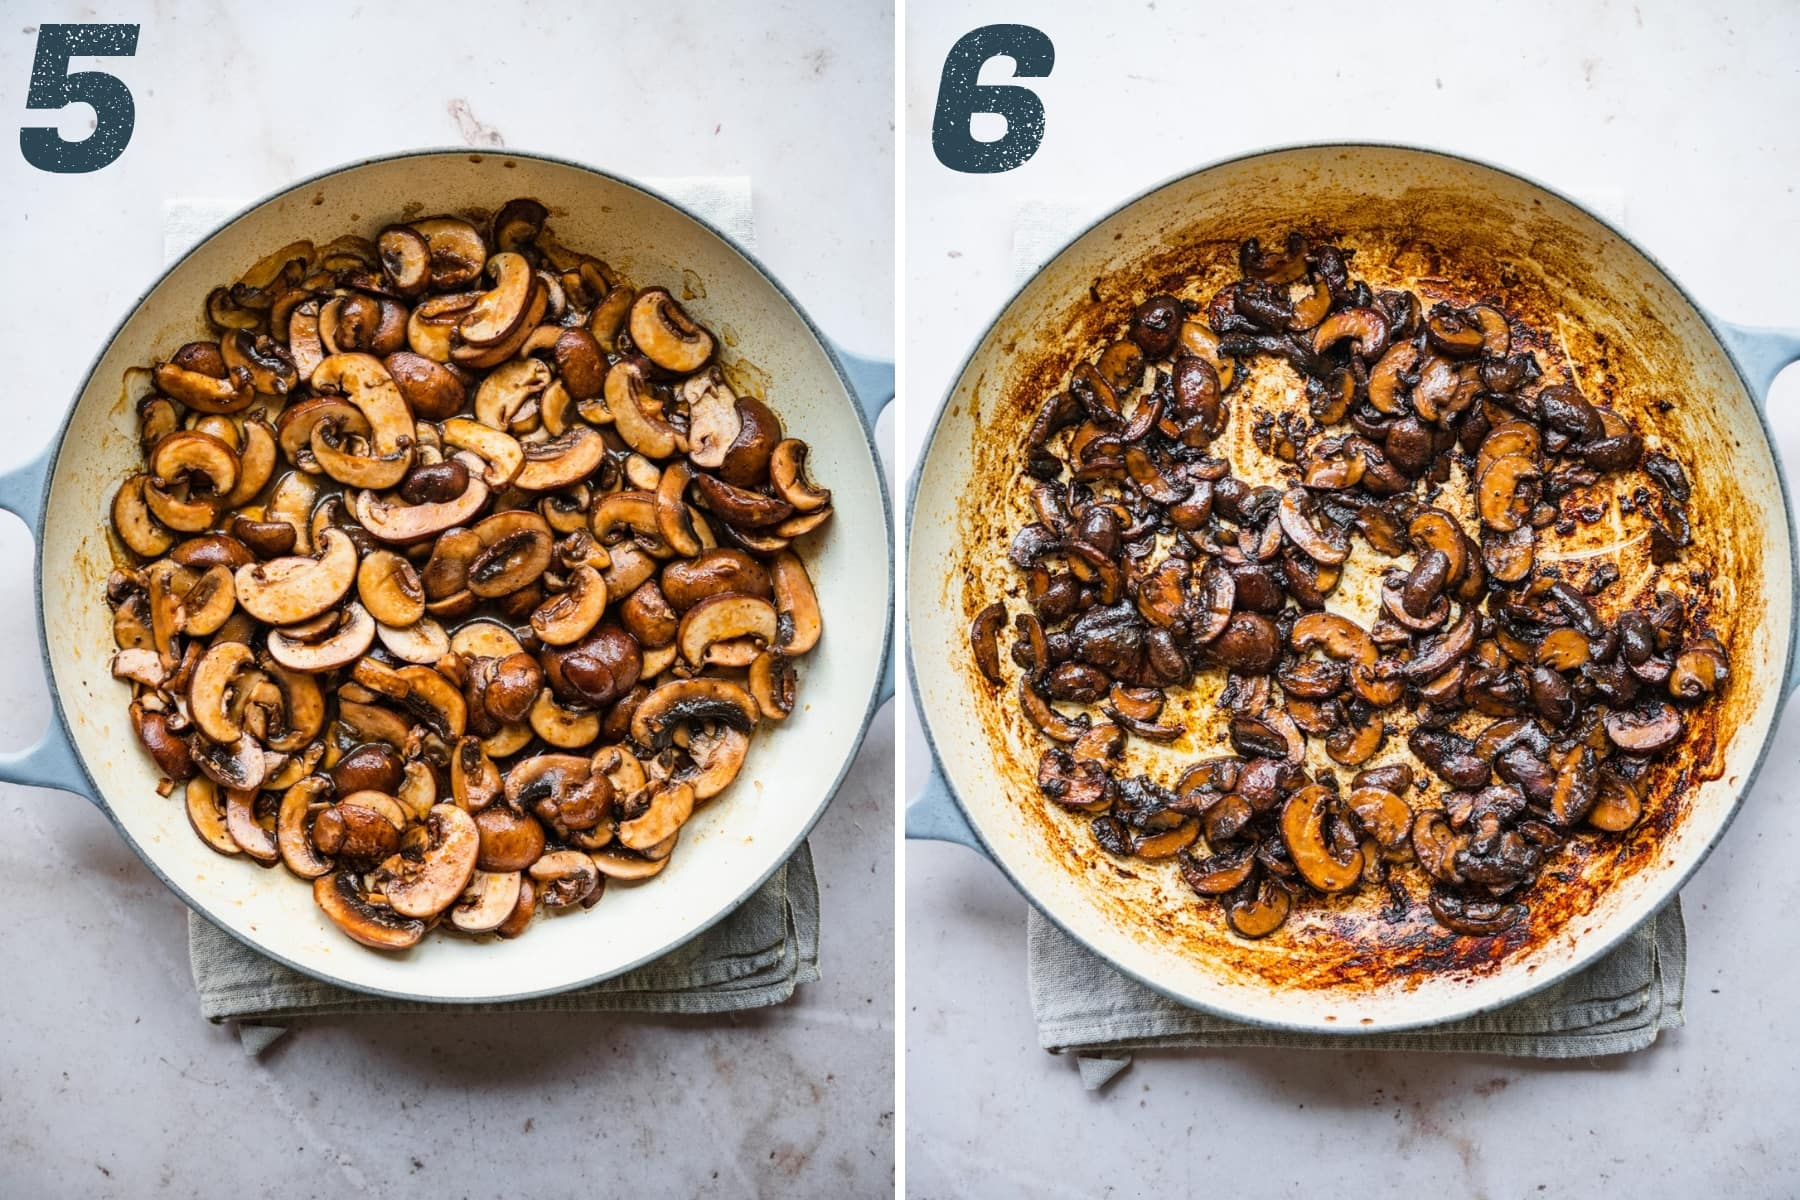 before and after cooking down mushroom bacon in sauté pan.